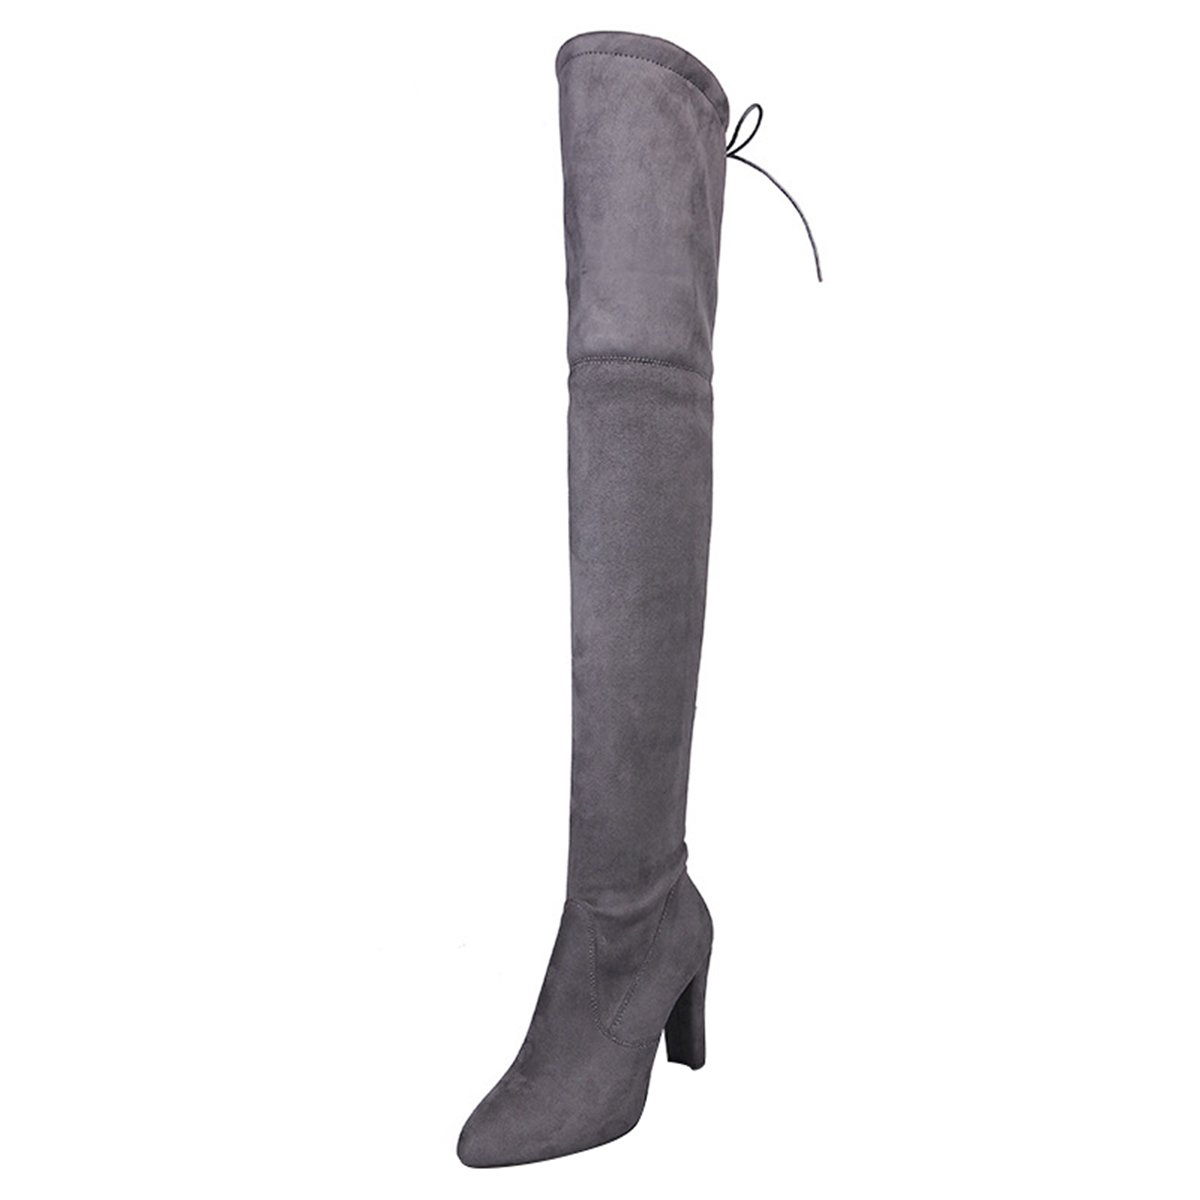 Thigh High Wide Womens Boots Side Zip Chunky High Heel Faux Suede Over The Knee Boots for Women